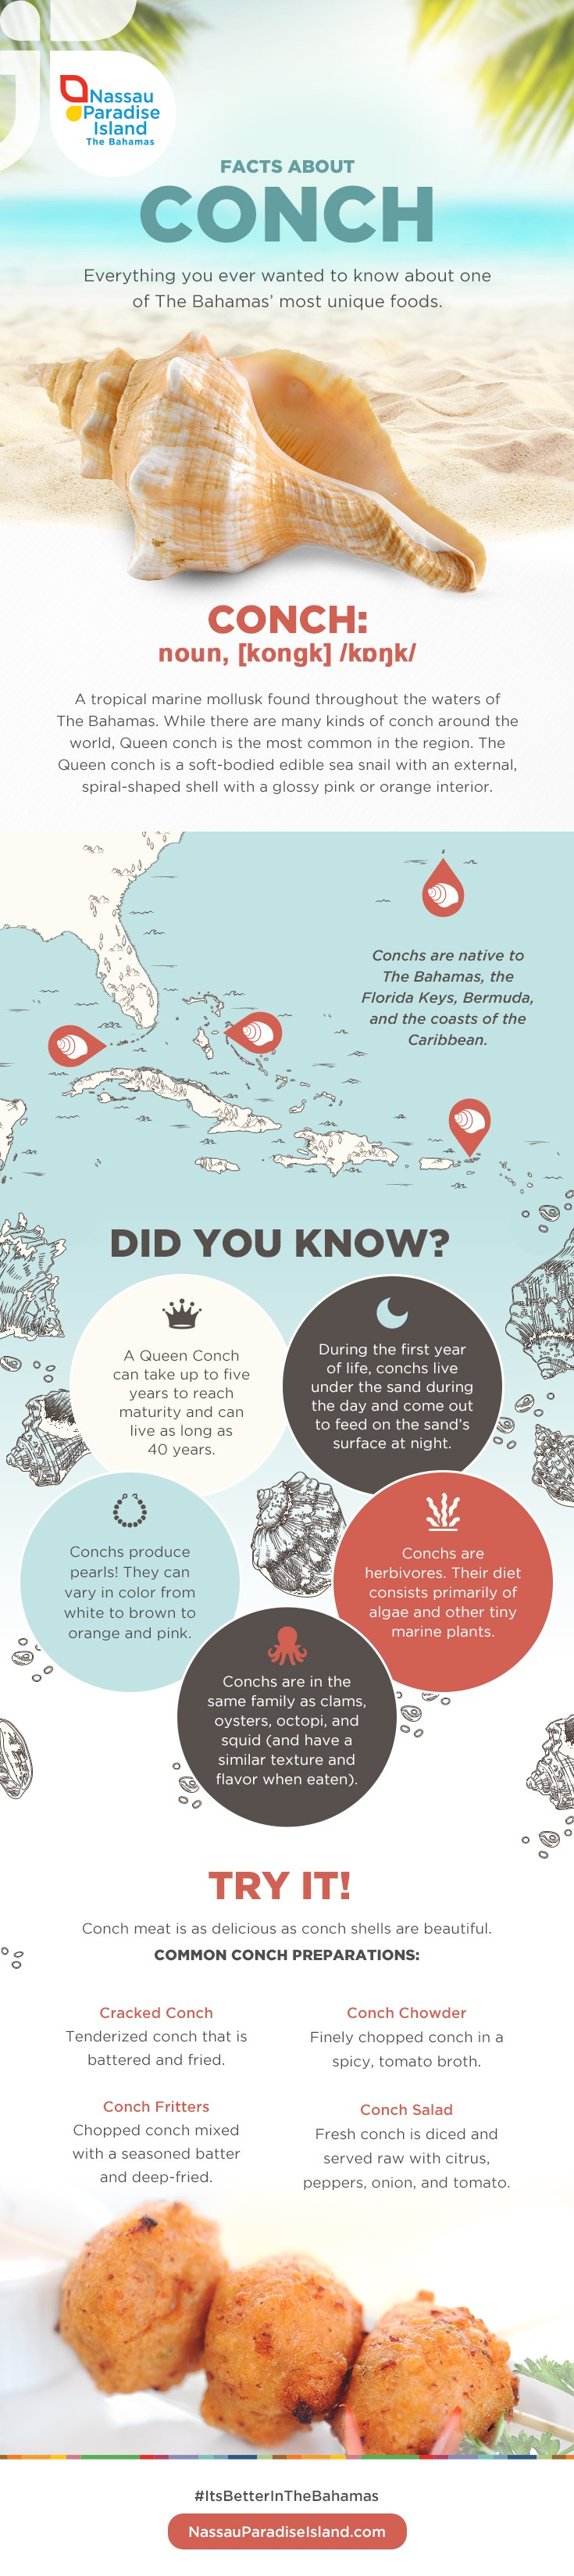 Infographic: Facts About Conch